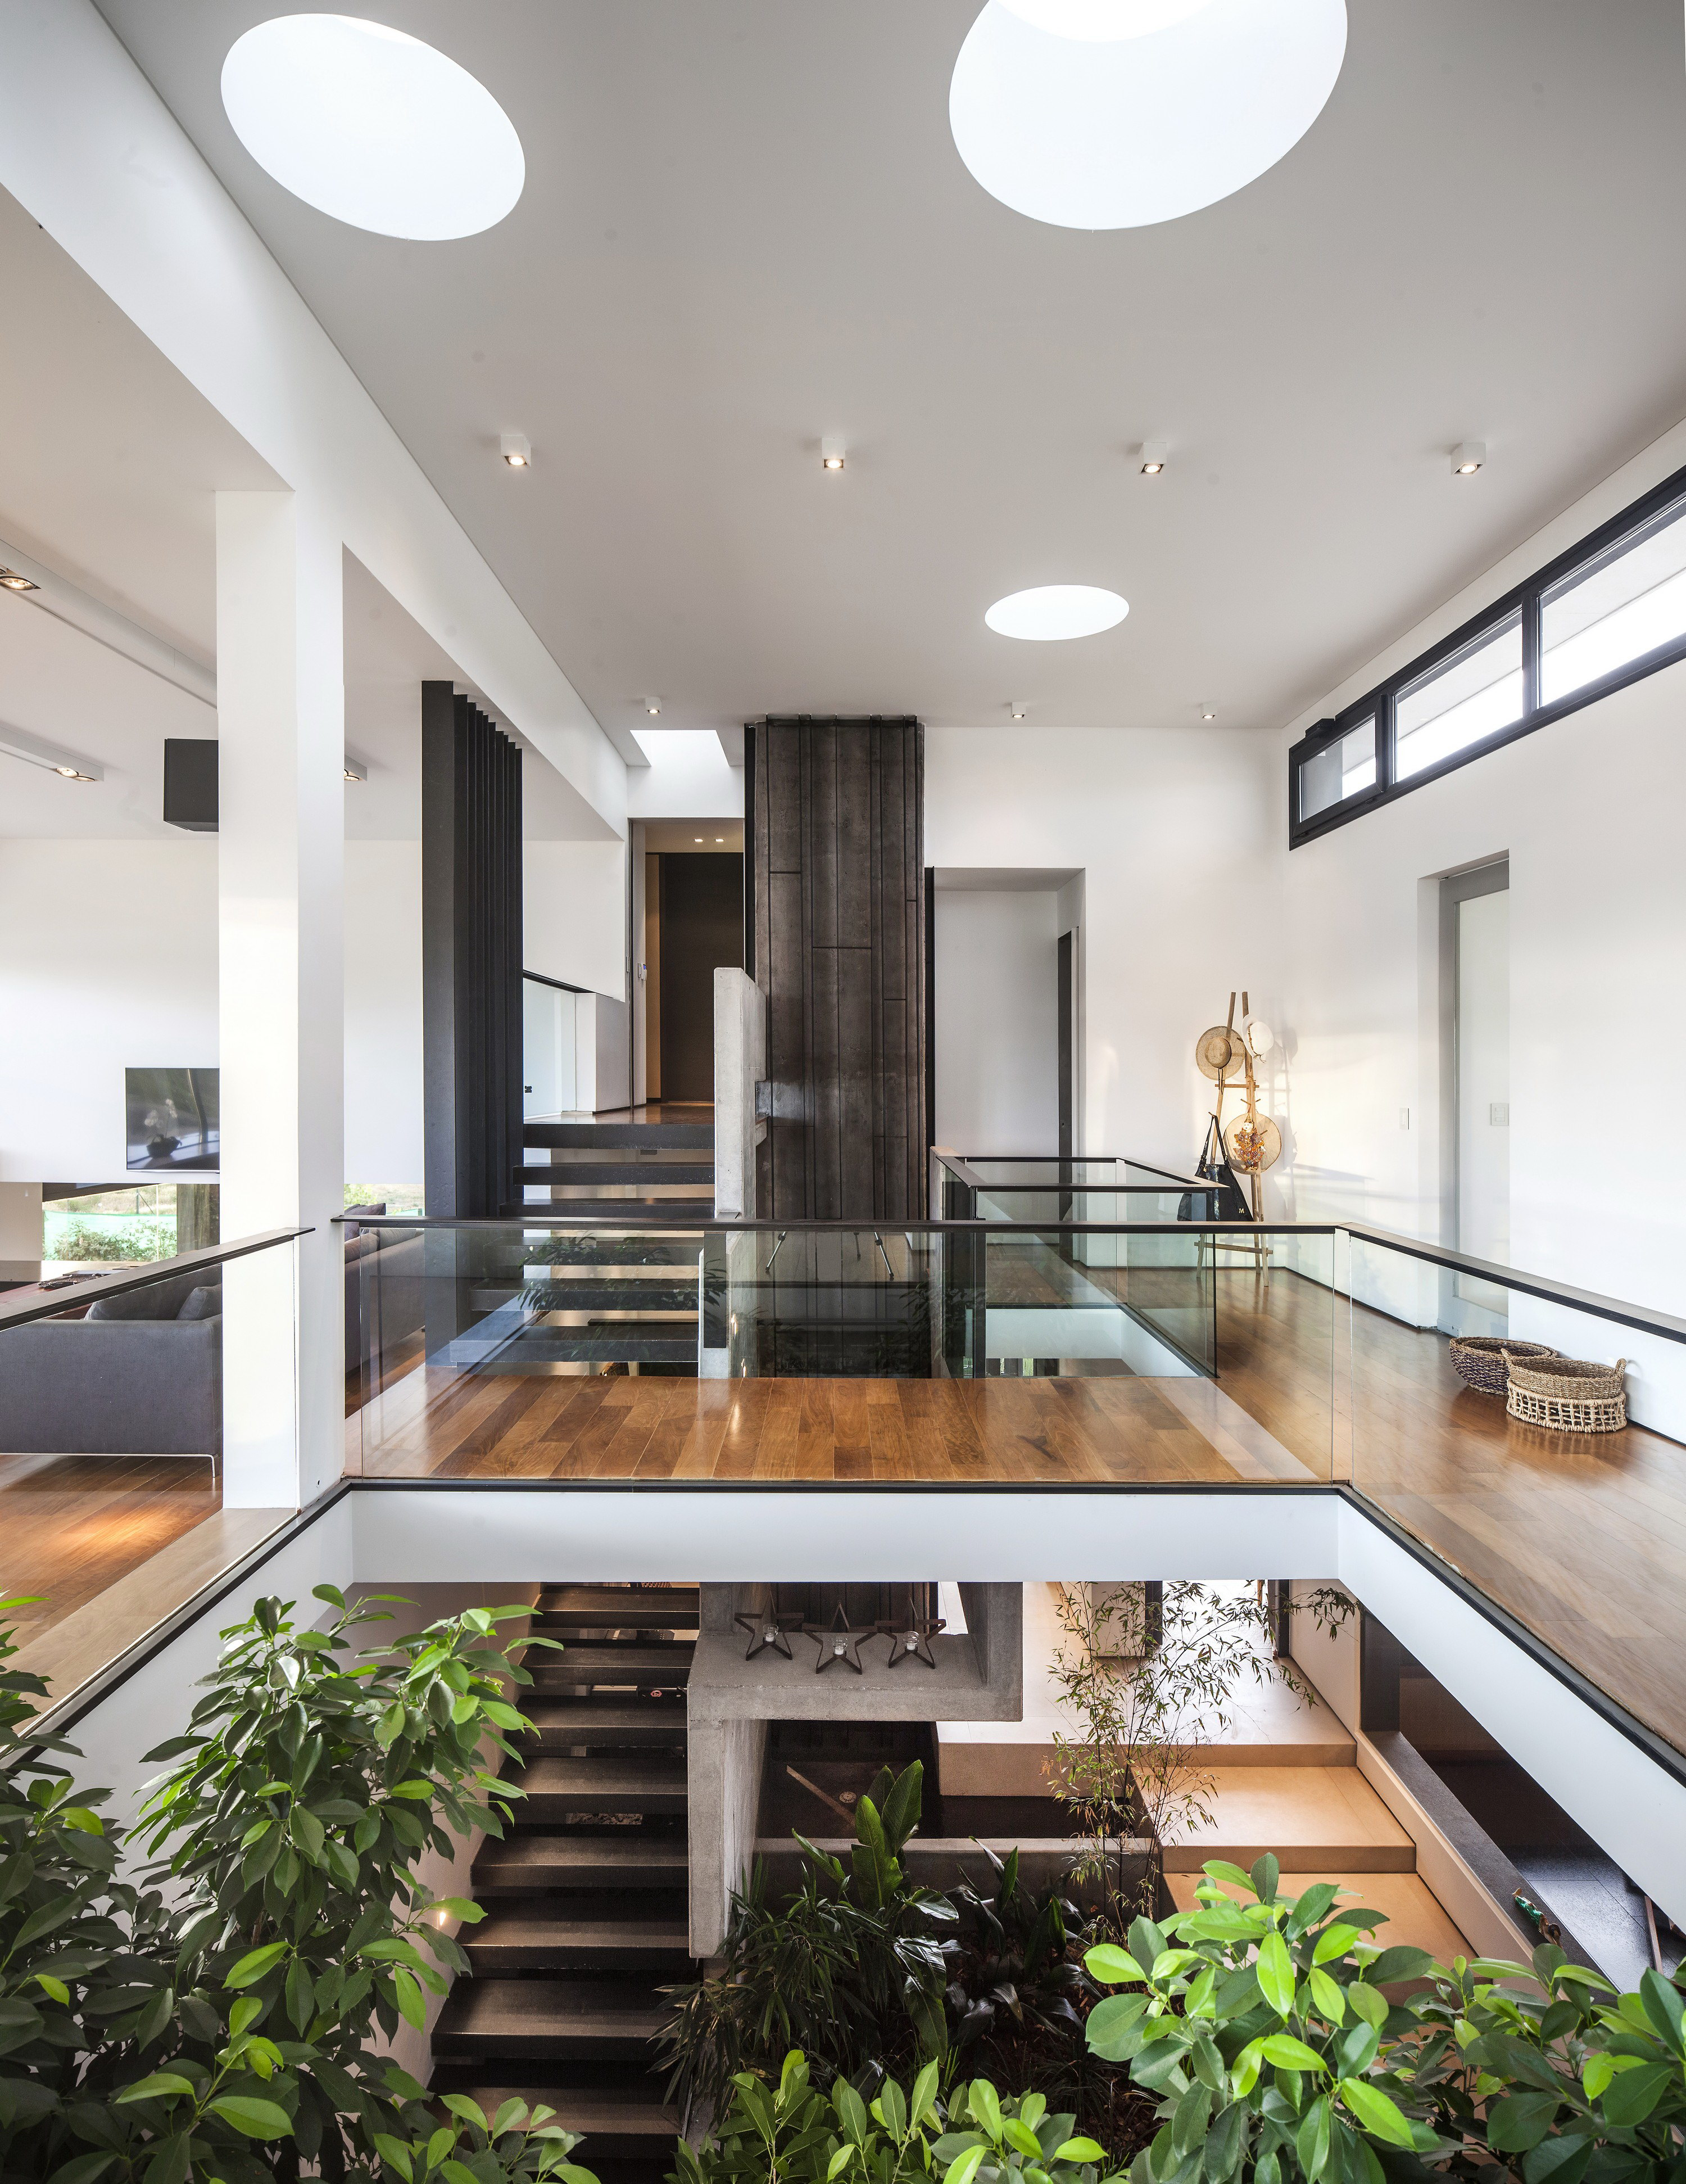 Ramp House by Andrés Remy Arquitectos